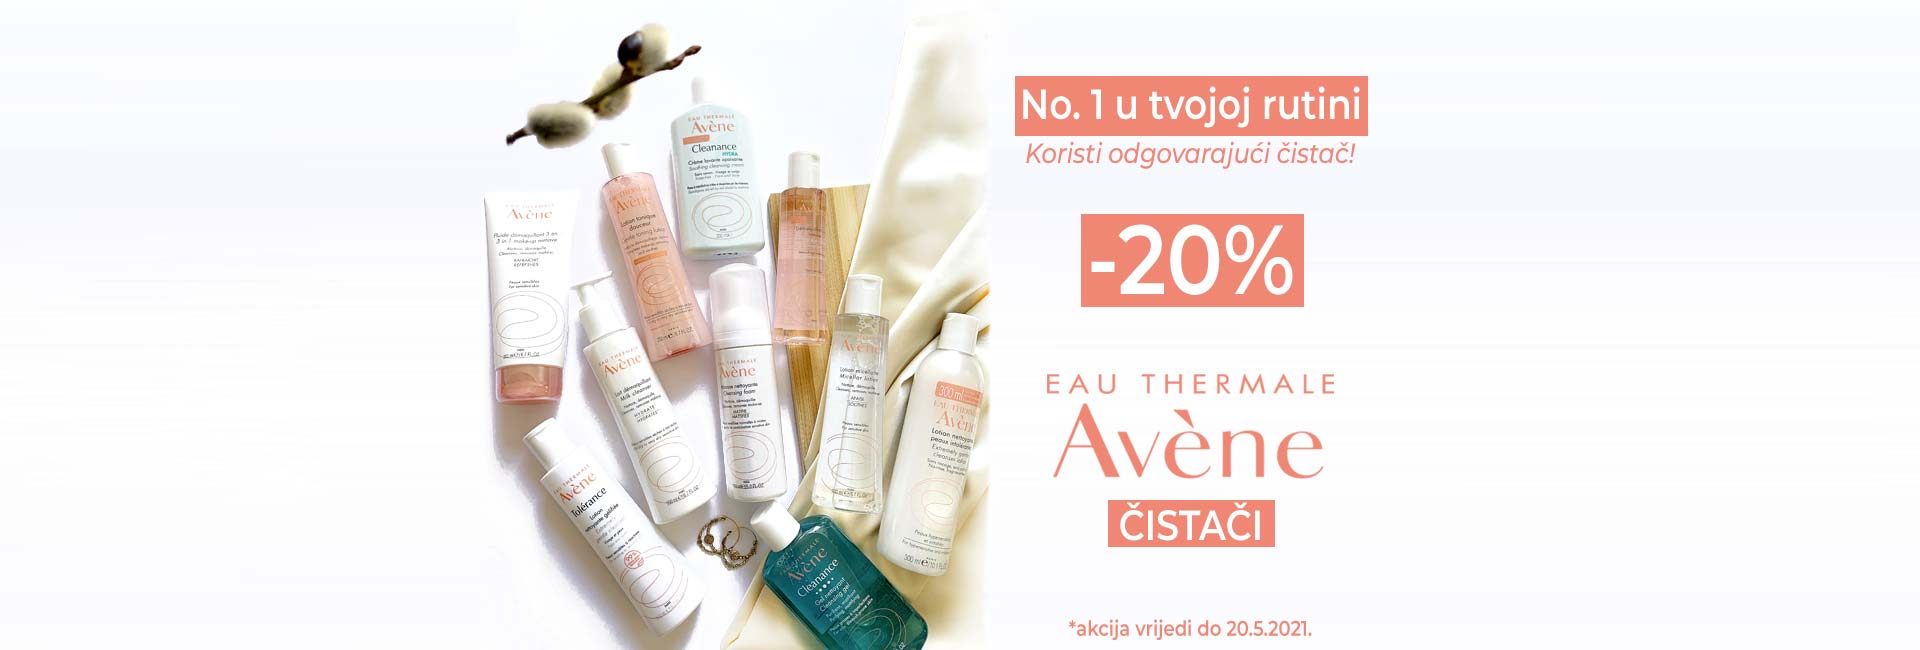 avene čistači -20% do 20.5.2021.